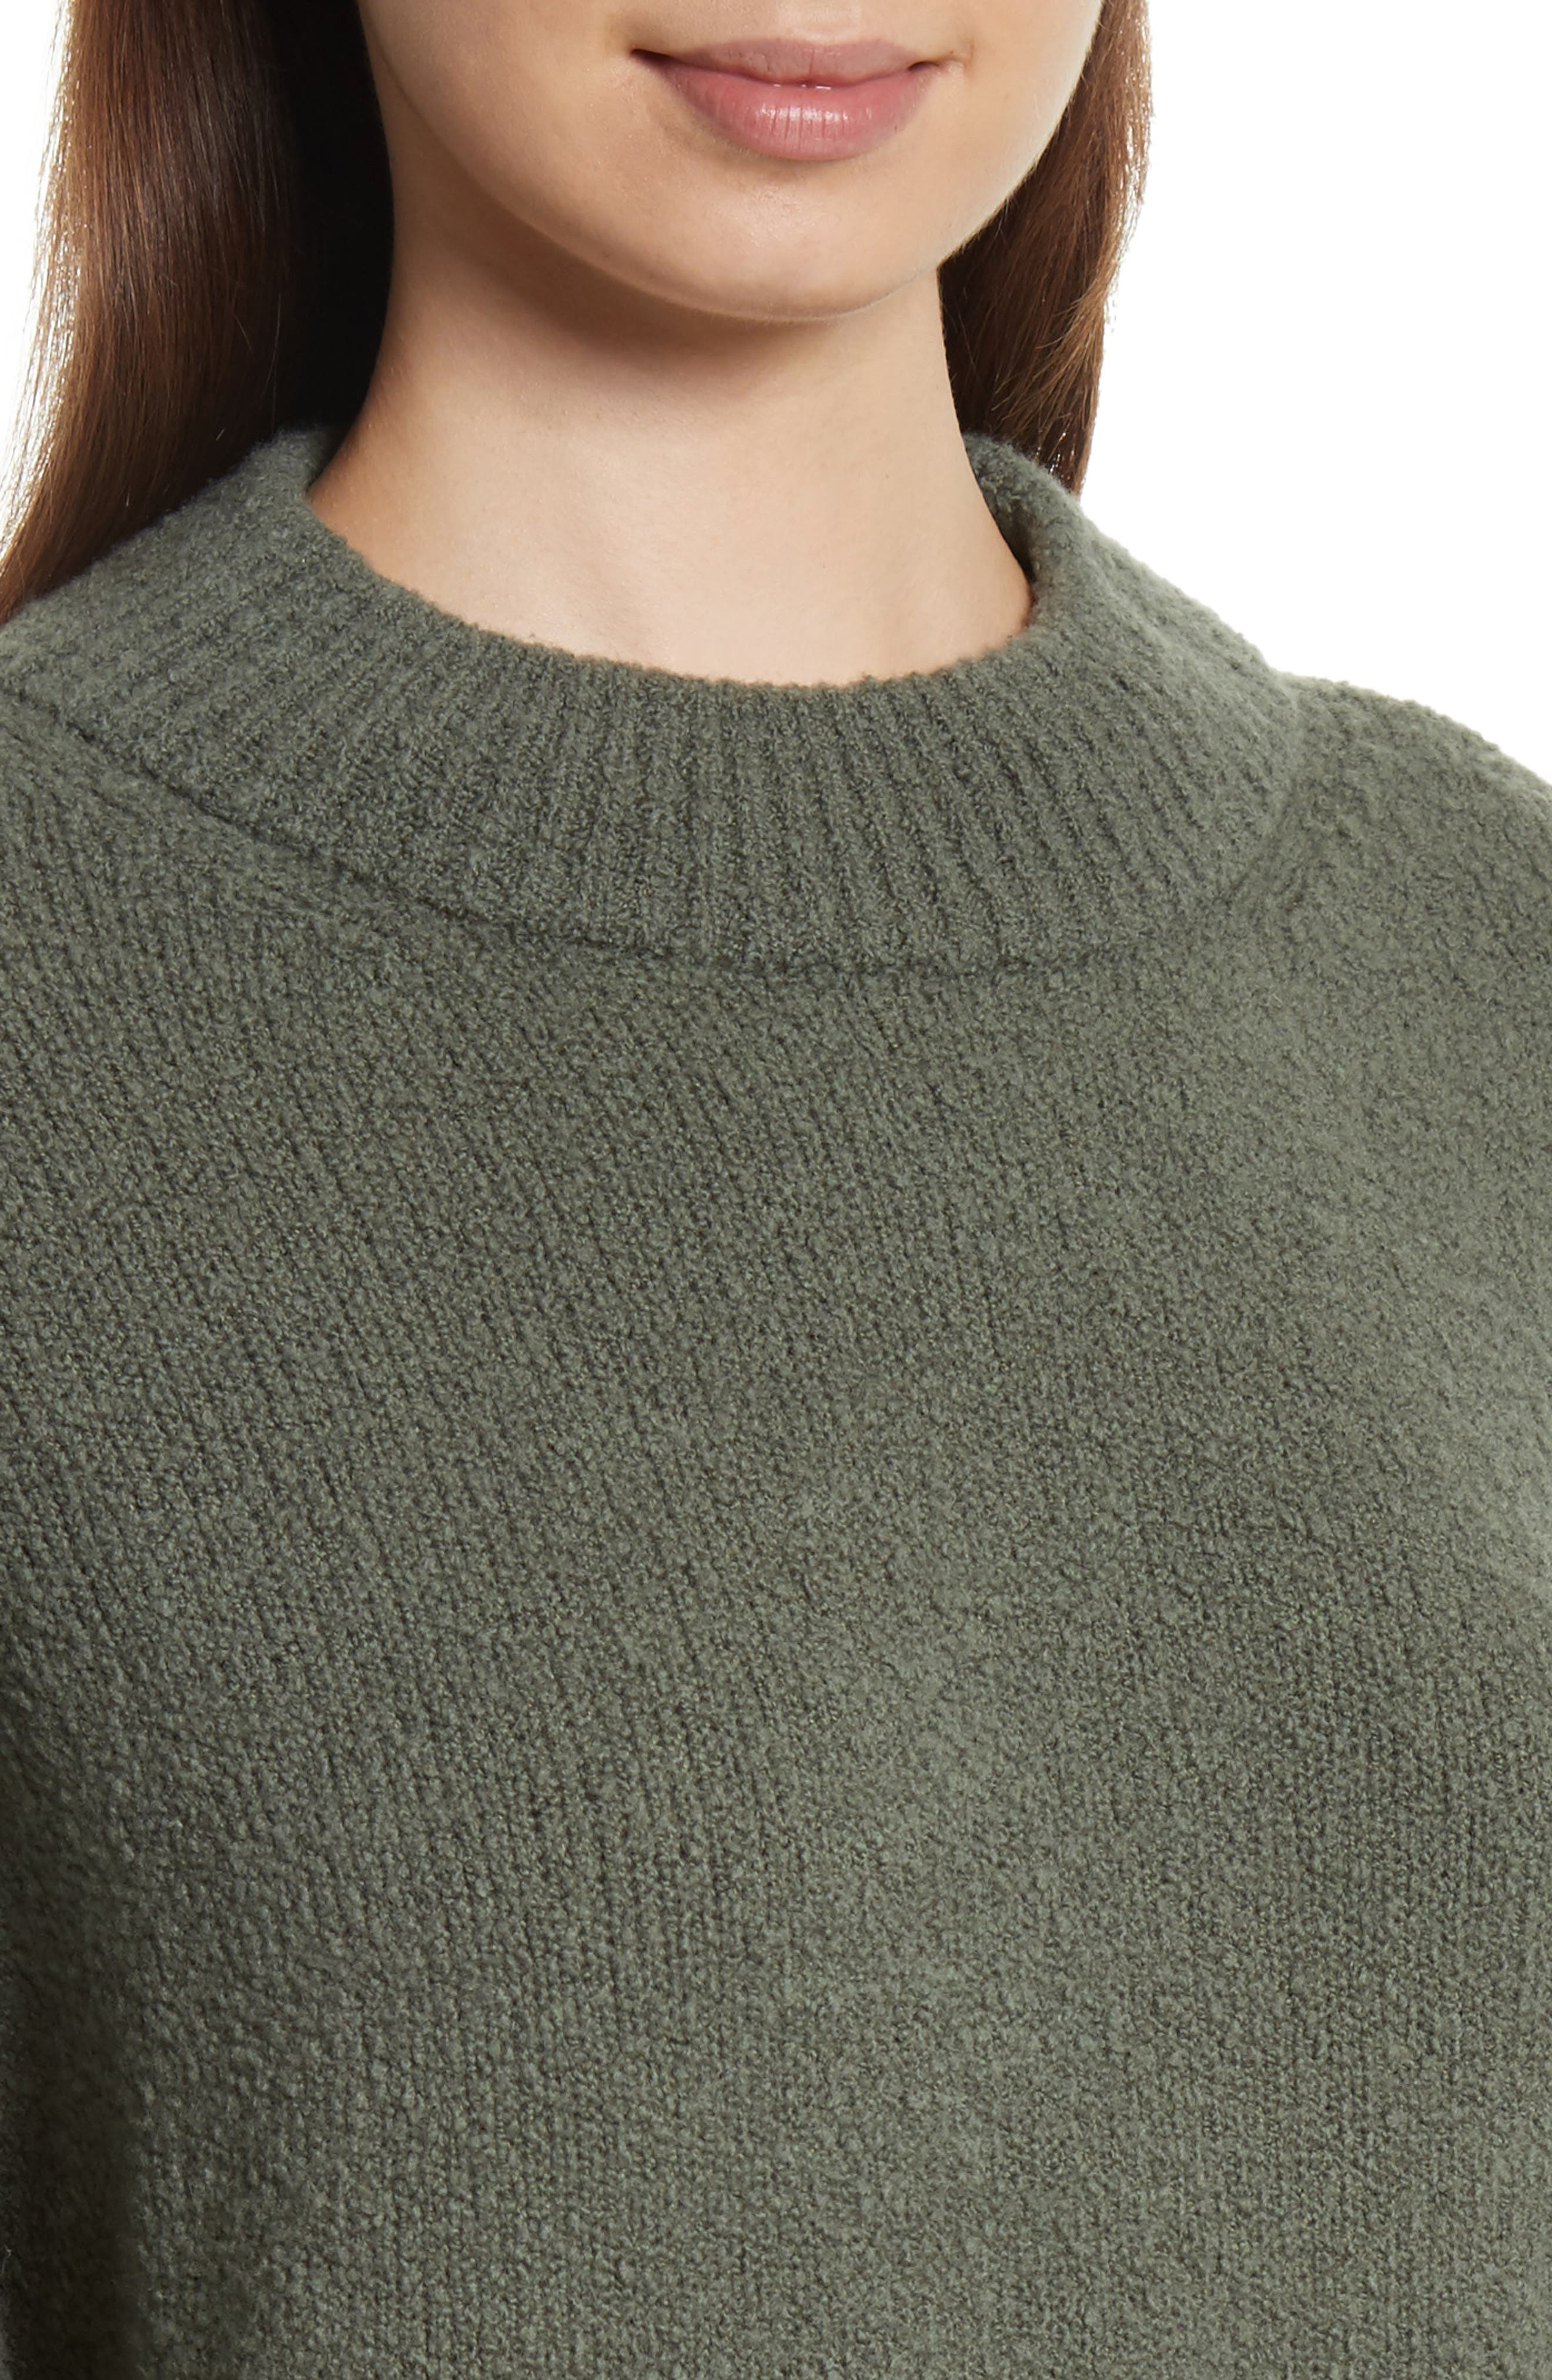 Boxy Knit Pullover,                             Alternate thumbnail 4, color,                             Frog